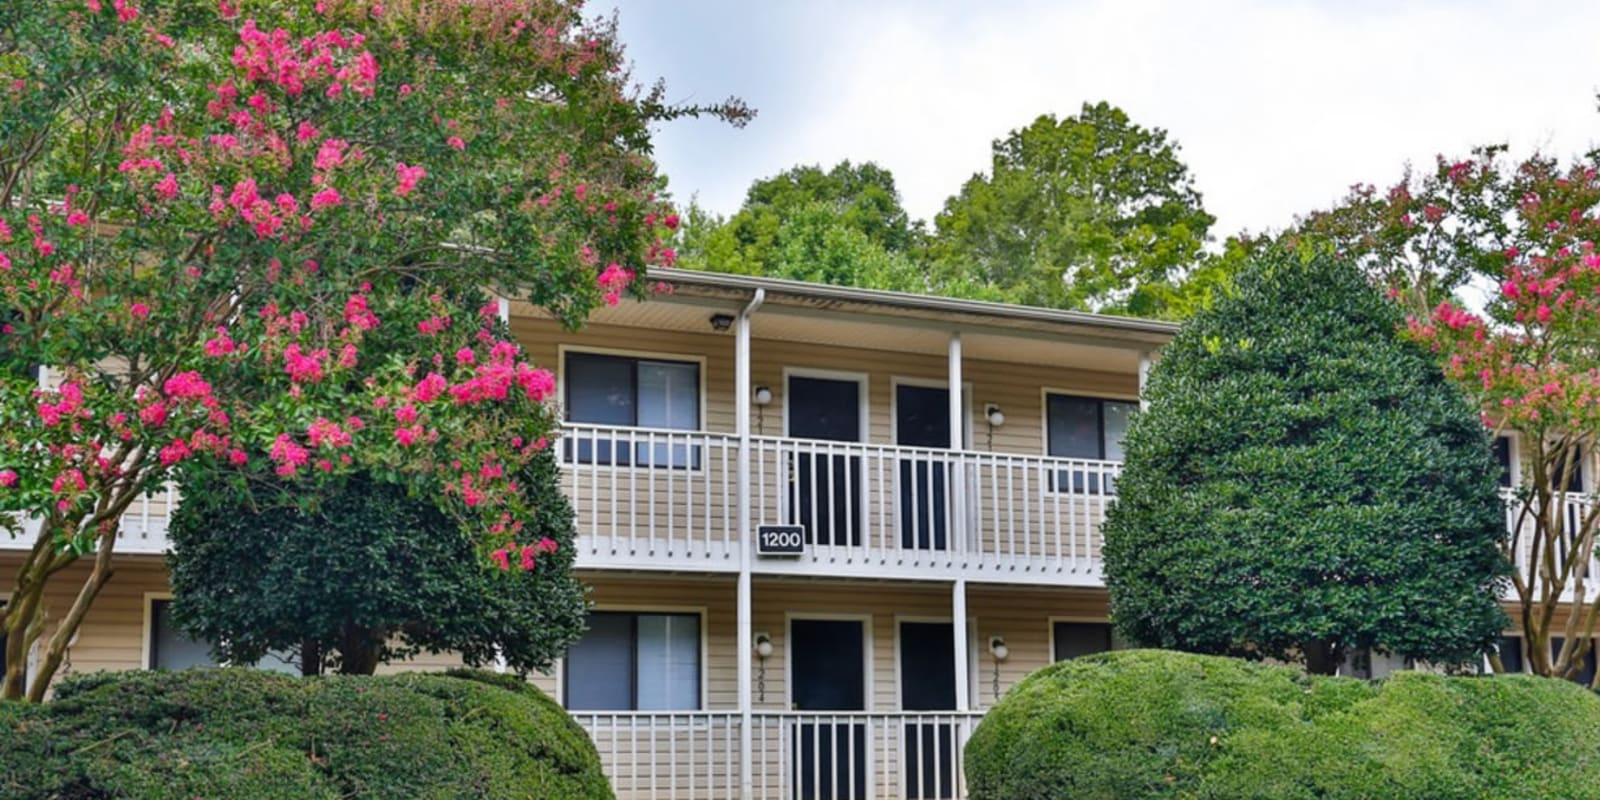 Beautiful country-side exterior at Huntersville Apartment Homes in Huntersville, North Carolina